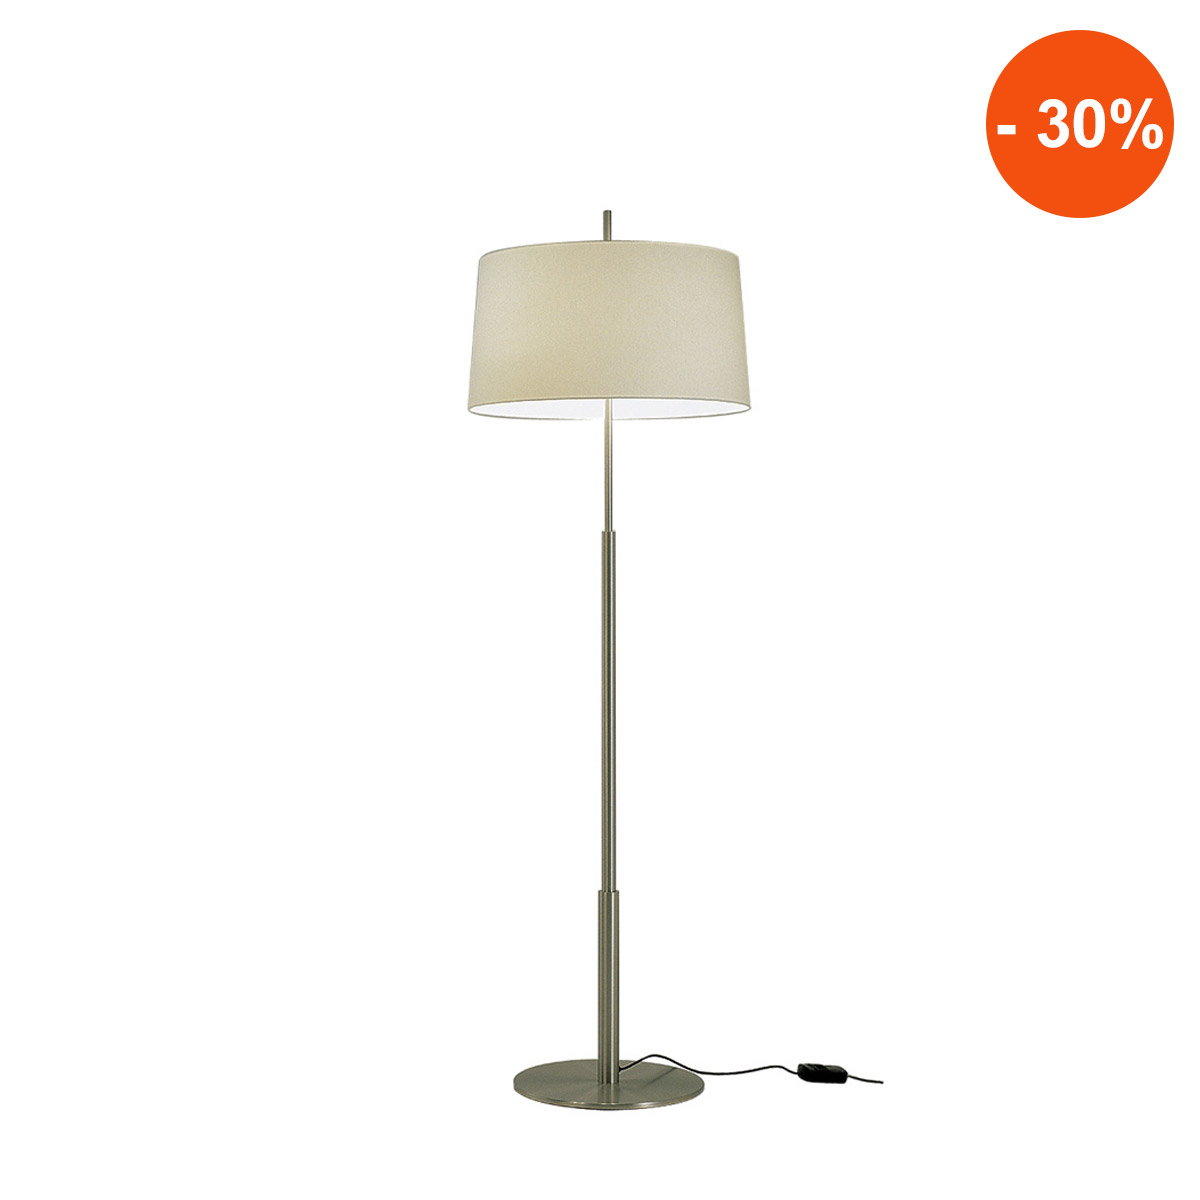 Lighting d 39 amico design for D amico arredamenti casoli